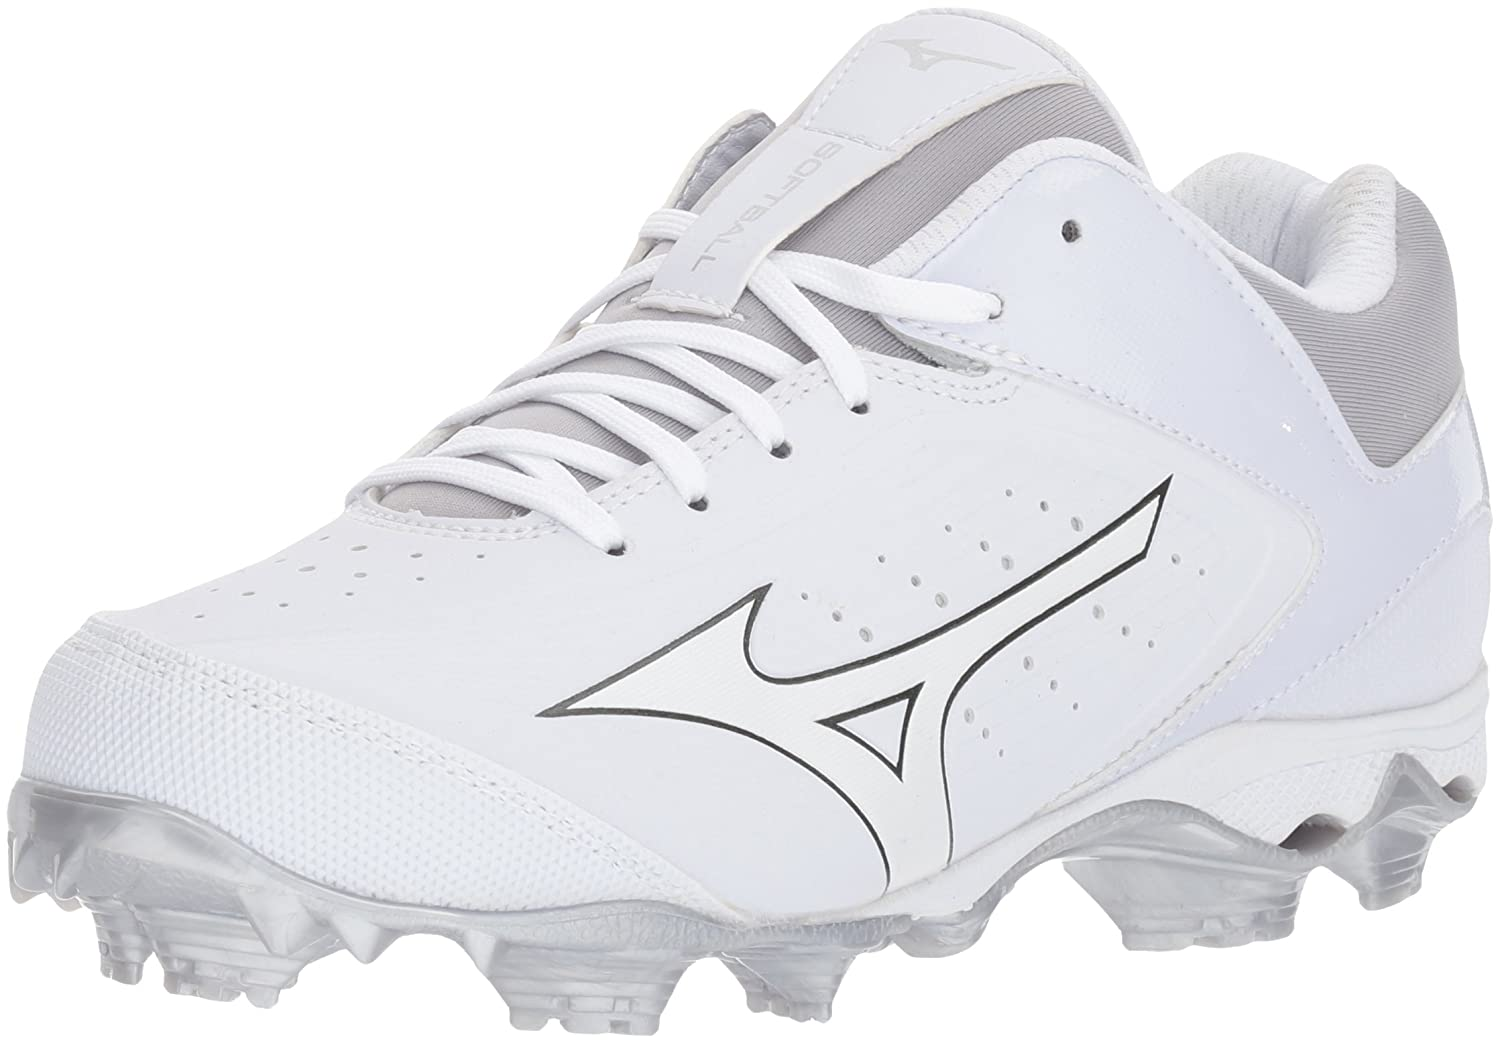 Mizuno (MIZD9) レディース 9-Spike Advanced Finch Elite 3 Womens Fastpitch Softball Cleat B071WKC8M8 8 B US|ホワイト/ホワイト ホワイト/ホワイト 8 B US